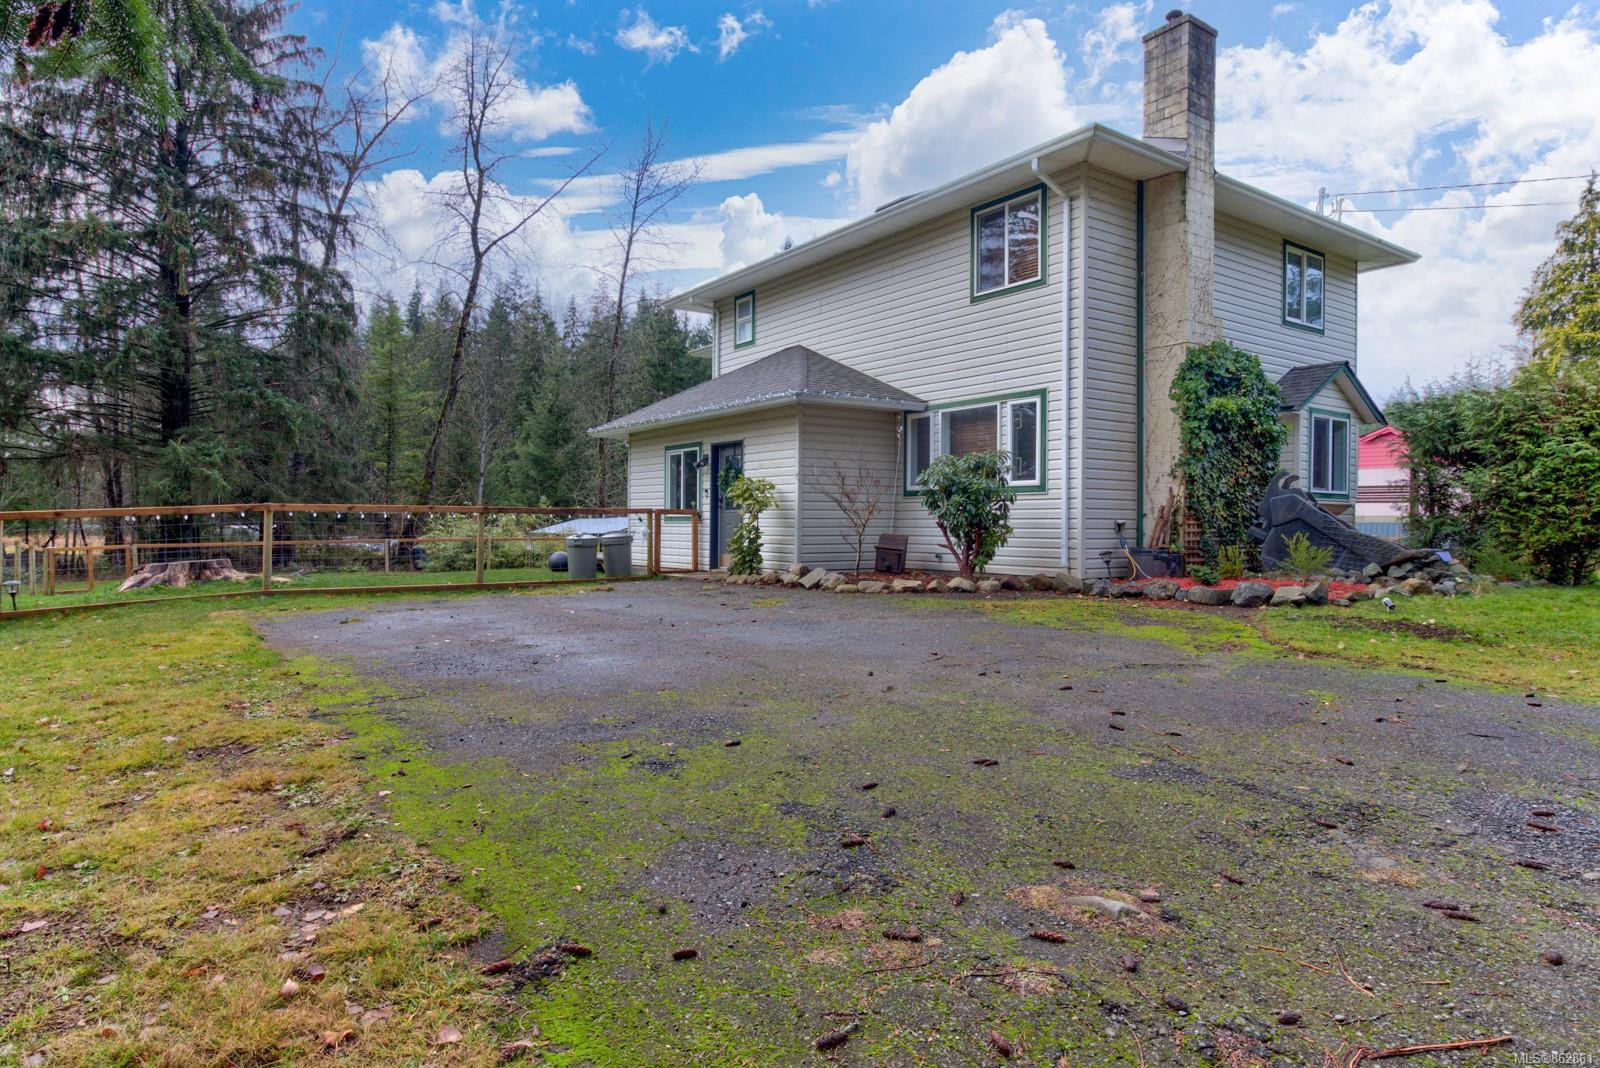 Main Photo: 6575 Poulton Rd in : CV Merville Black Creek House for sale (Comox Valley)  : MLS®# 862861